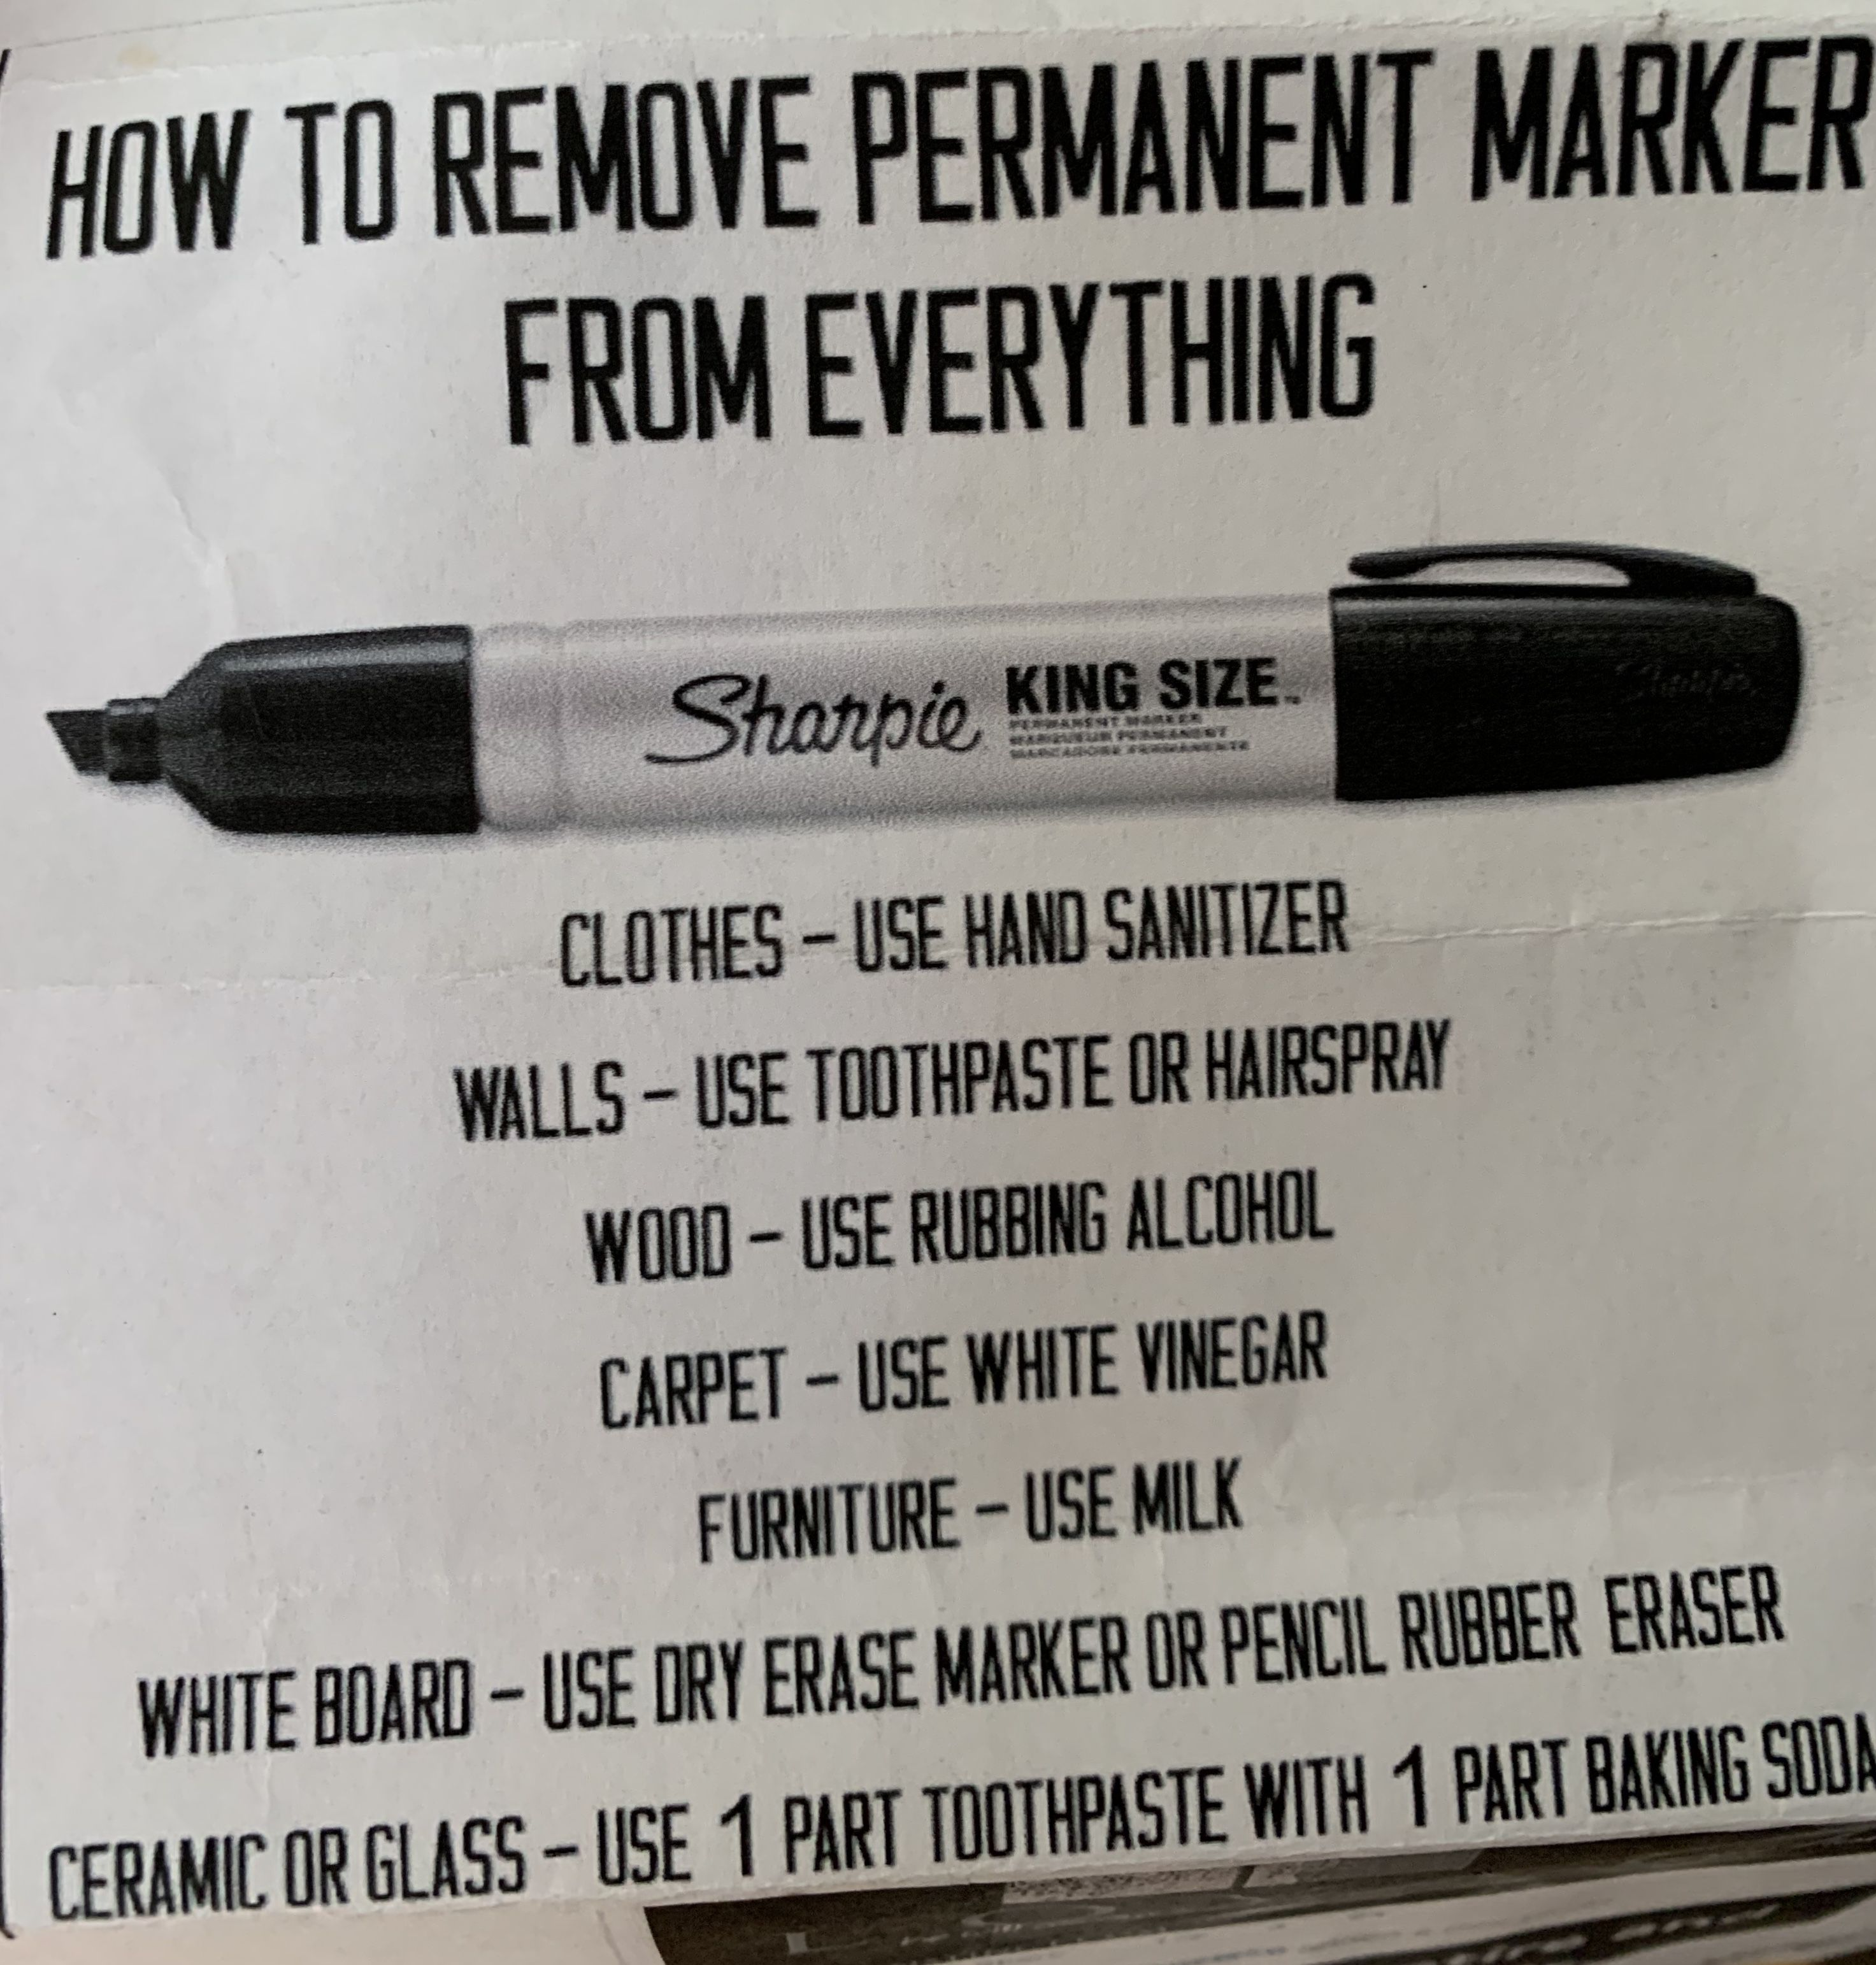 Pin By Kathy Girling On So Fresh And So Clean Rubbing Alcohol Uses Dry Erase Markers Dry Erase